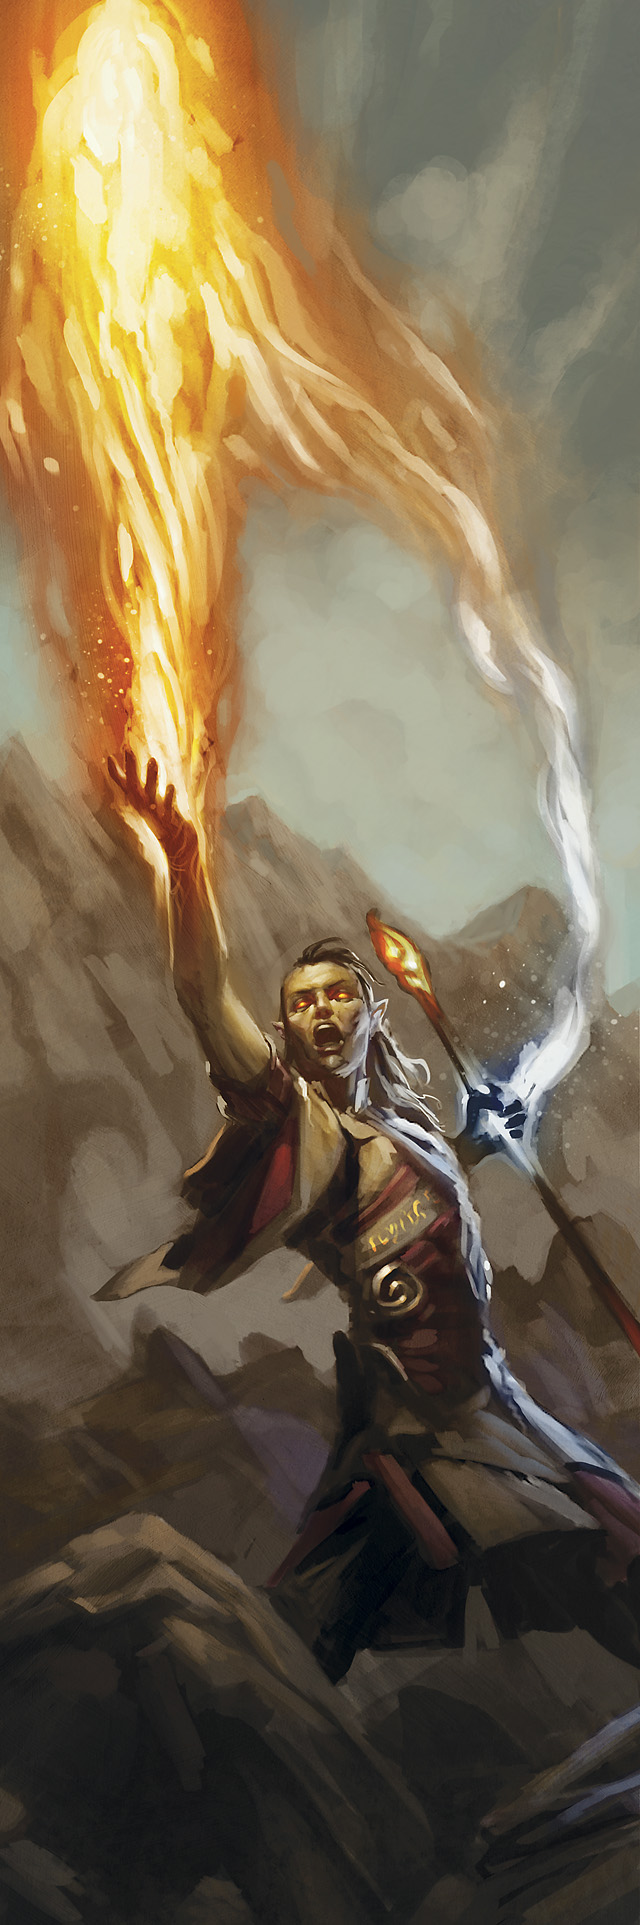 Fire Priest, courtesy of WotC